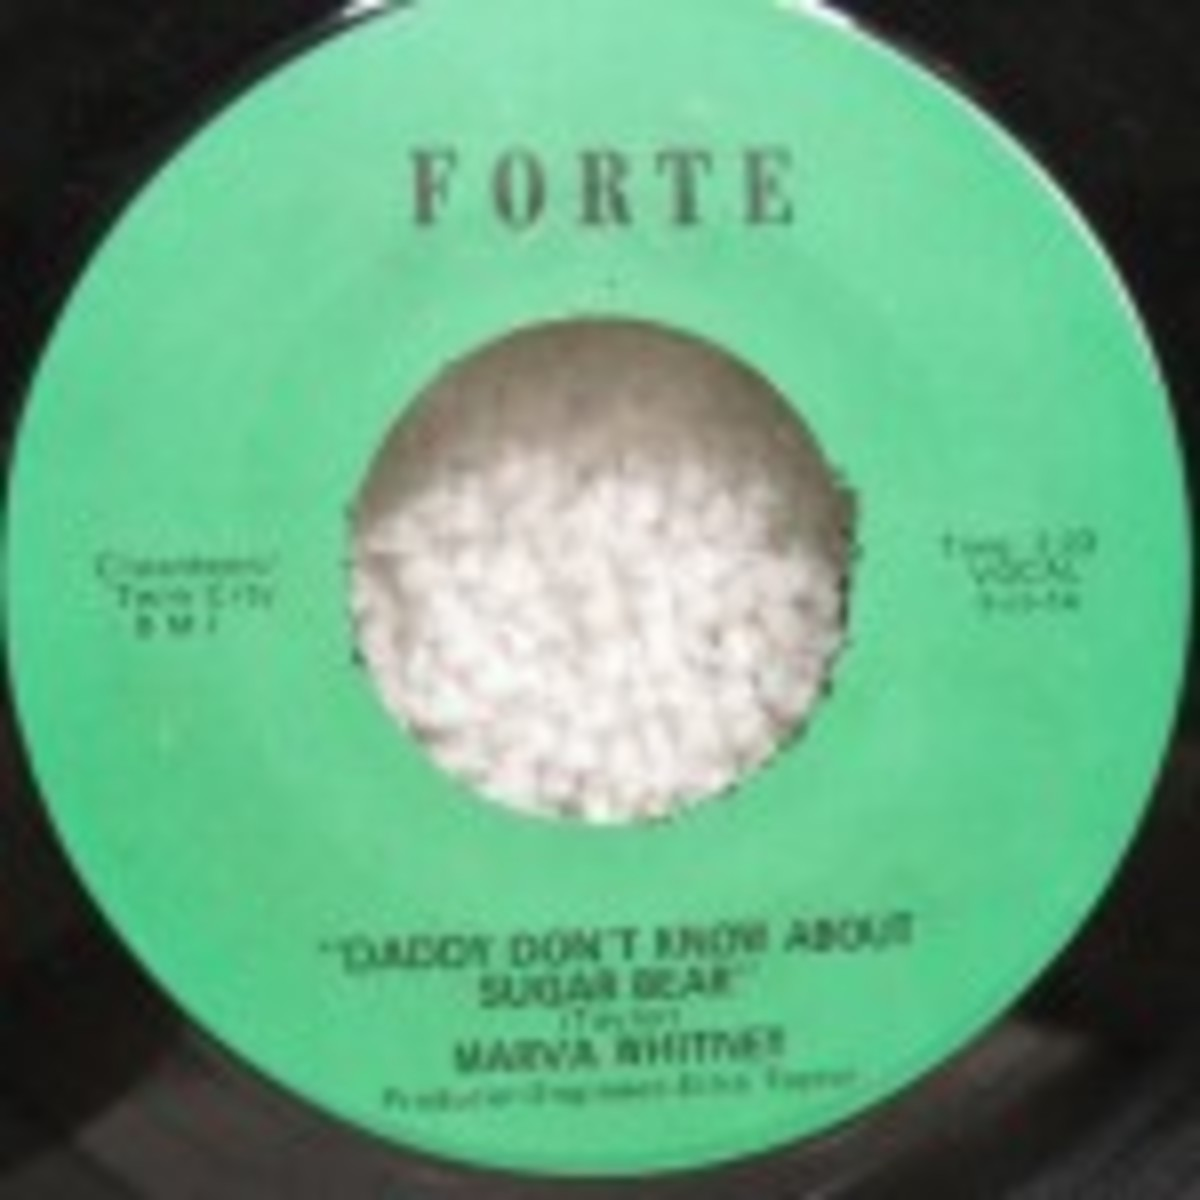 Northern Soul 45s